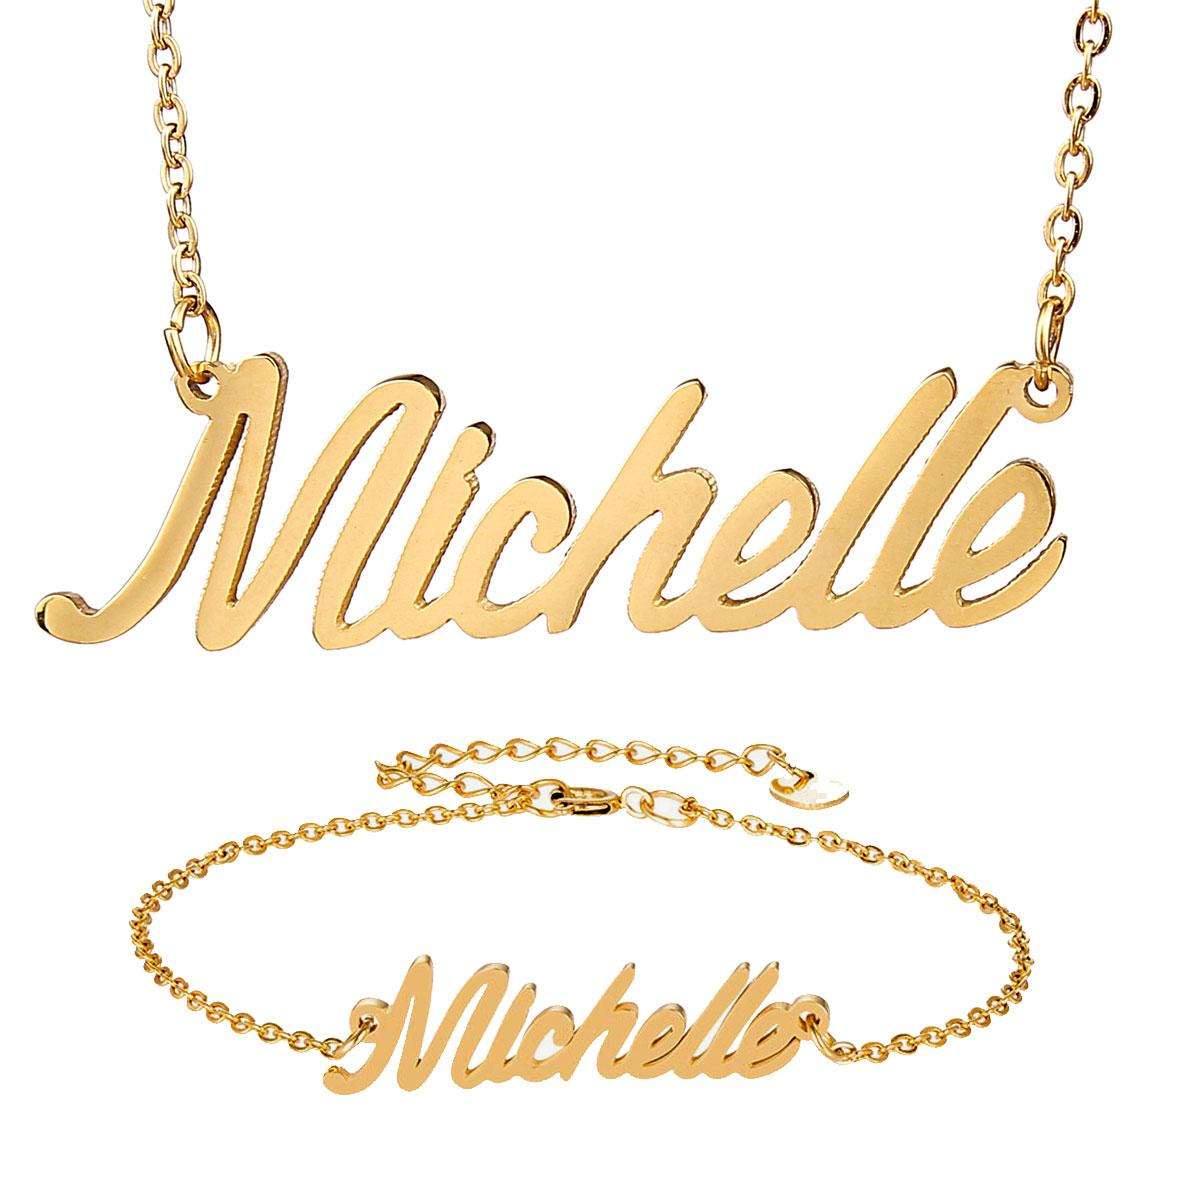 9f107272dde82 Fashion Stainless Steel Nameplate Necklace Bracelet Set Women Michelle  Script Letter Gold Choker Chain Necklace Pendant Nameplate Gift